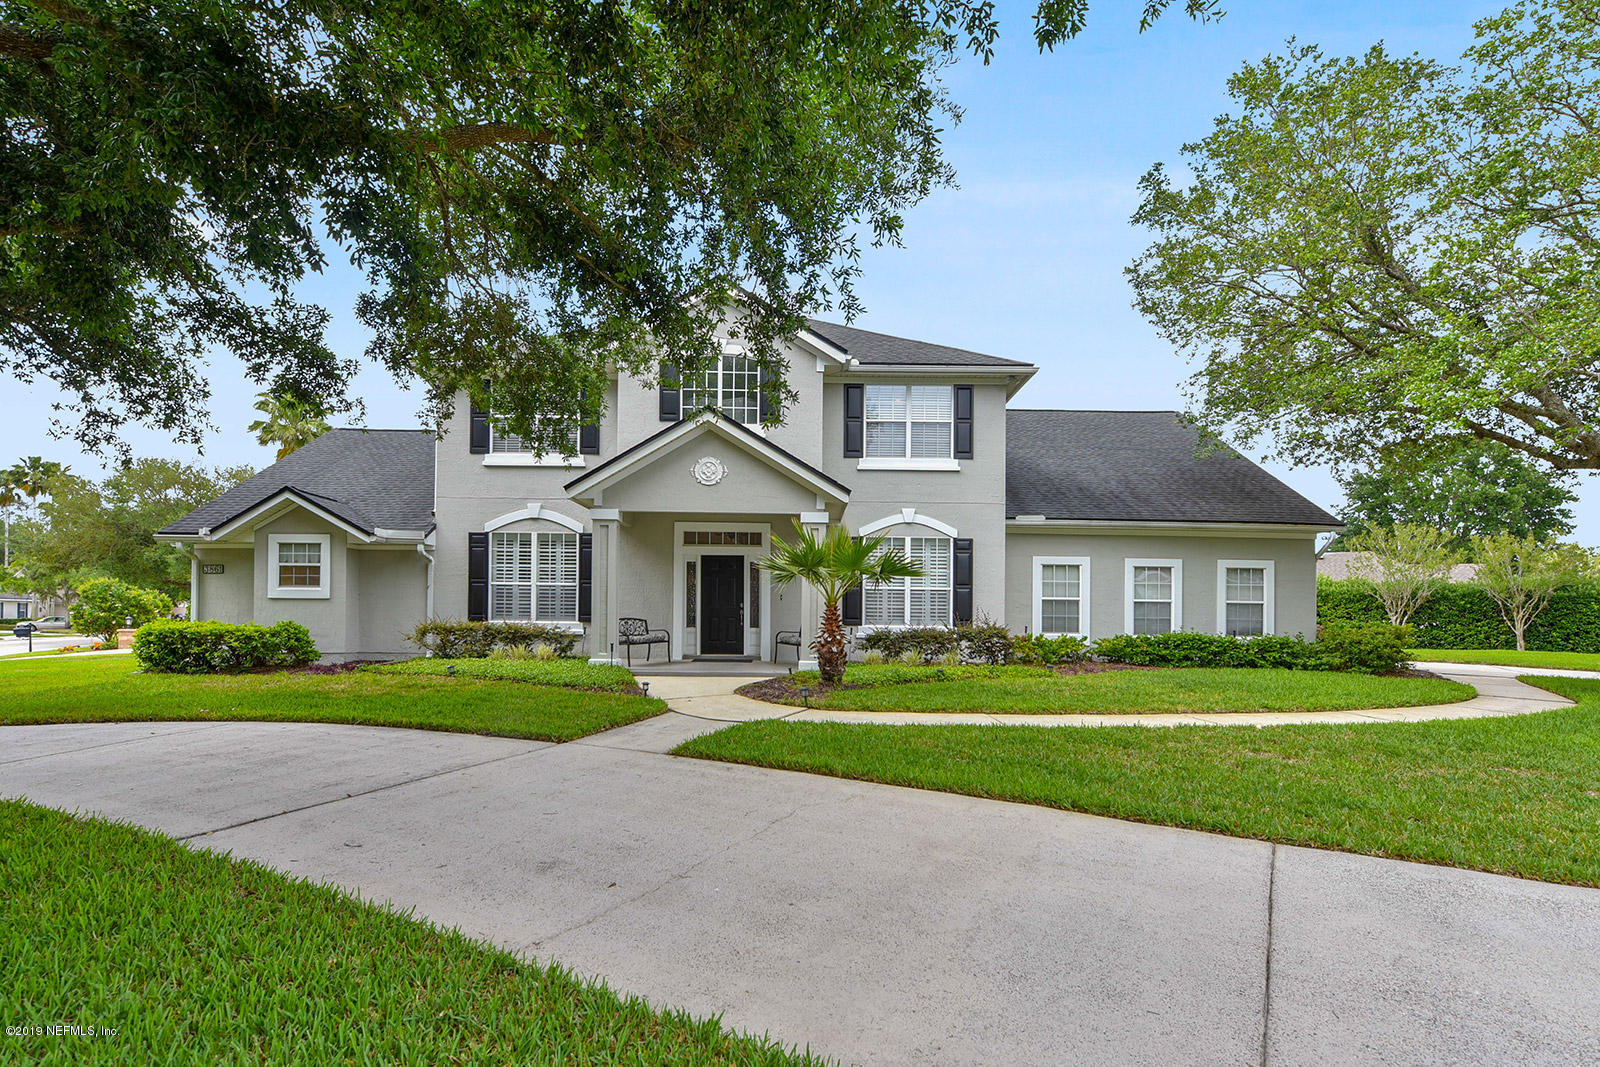 3861 MICHAELS LANDING, JACKSONVILLE, FLORIDA 32224, 6 Bedrooms Bedrooms, ,4 BathroomsBathrooms,Residential - single family,For sale,MICHAELS LANDING,995876